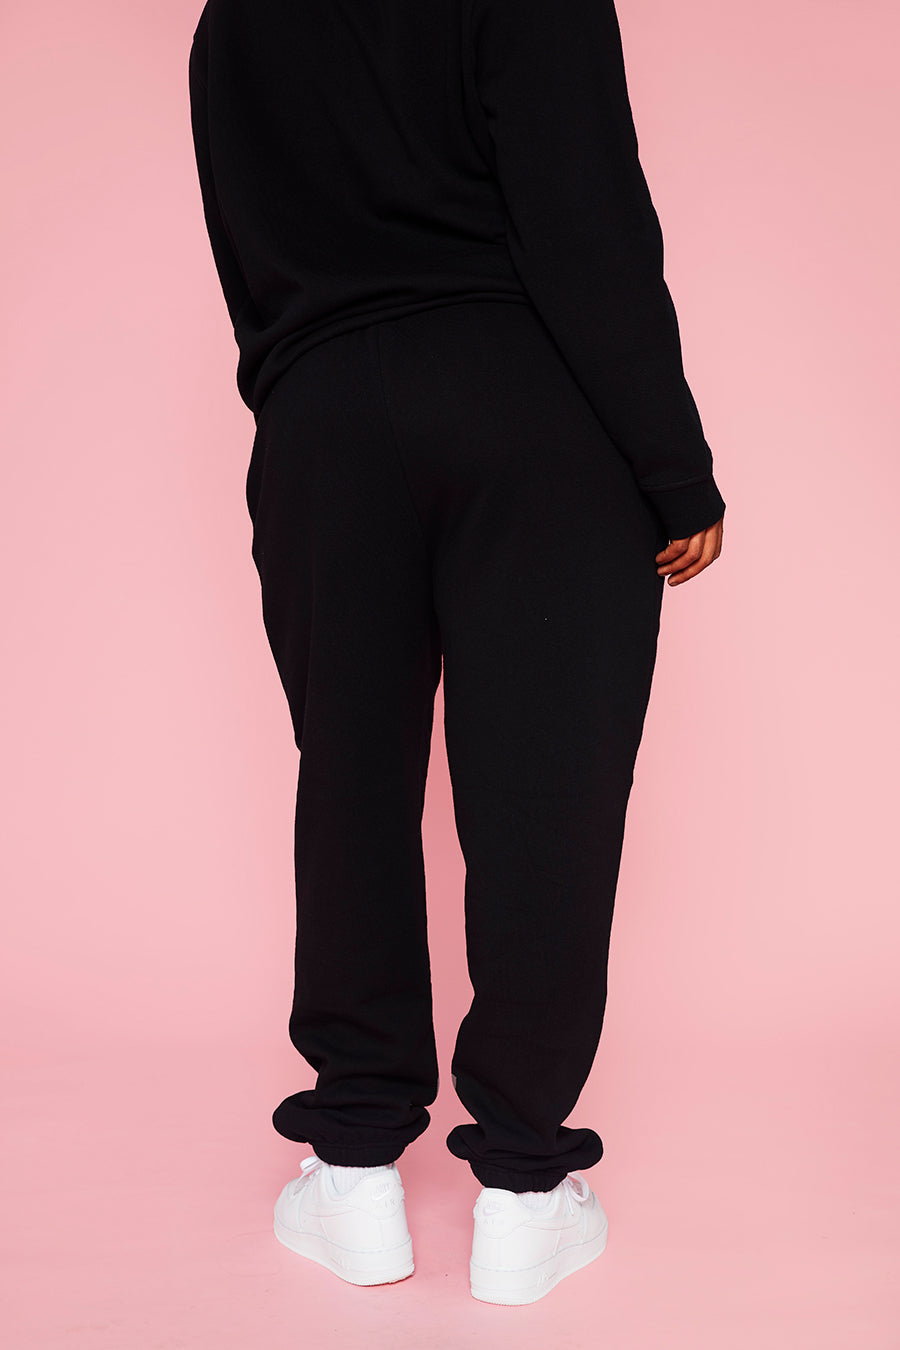 HELLO KITTY BLACK JOGGERS CURVE